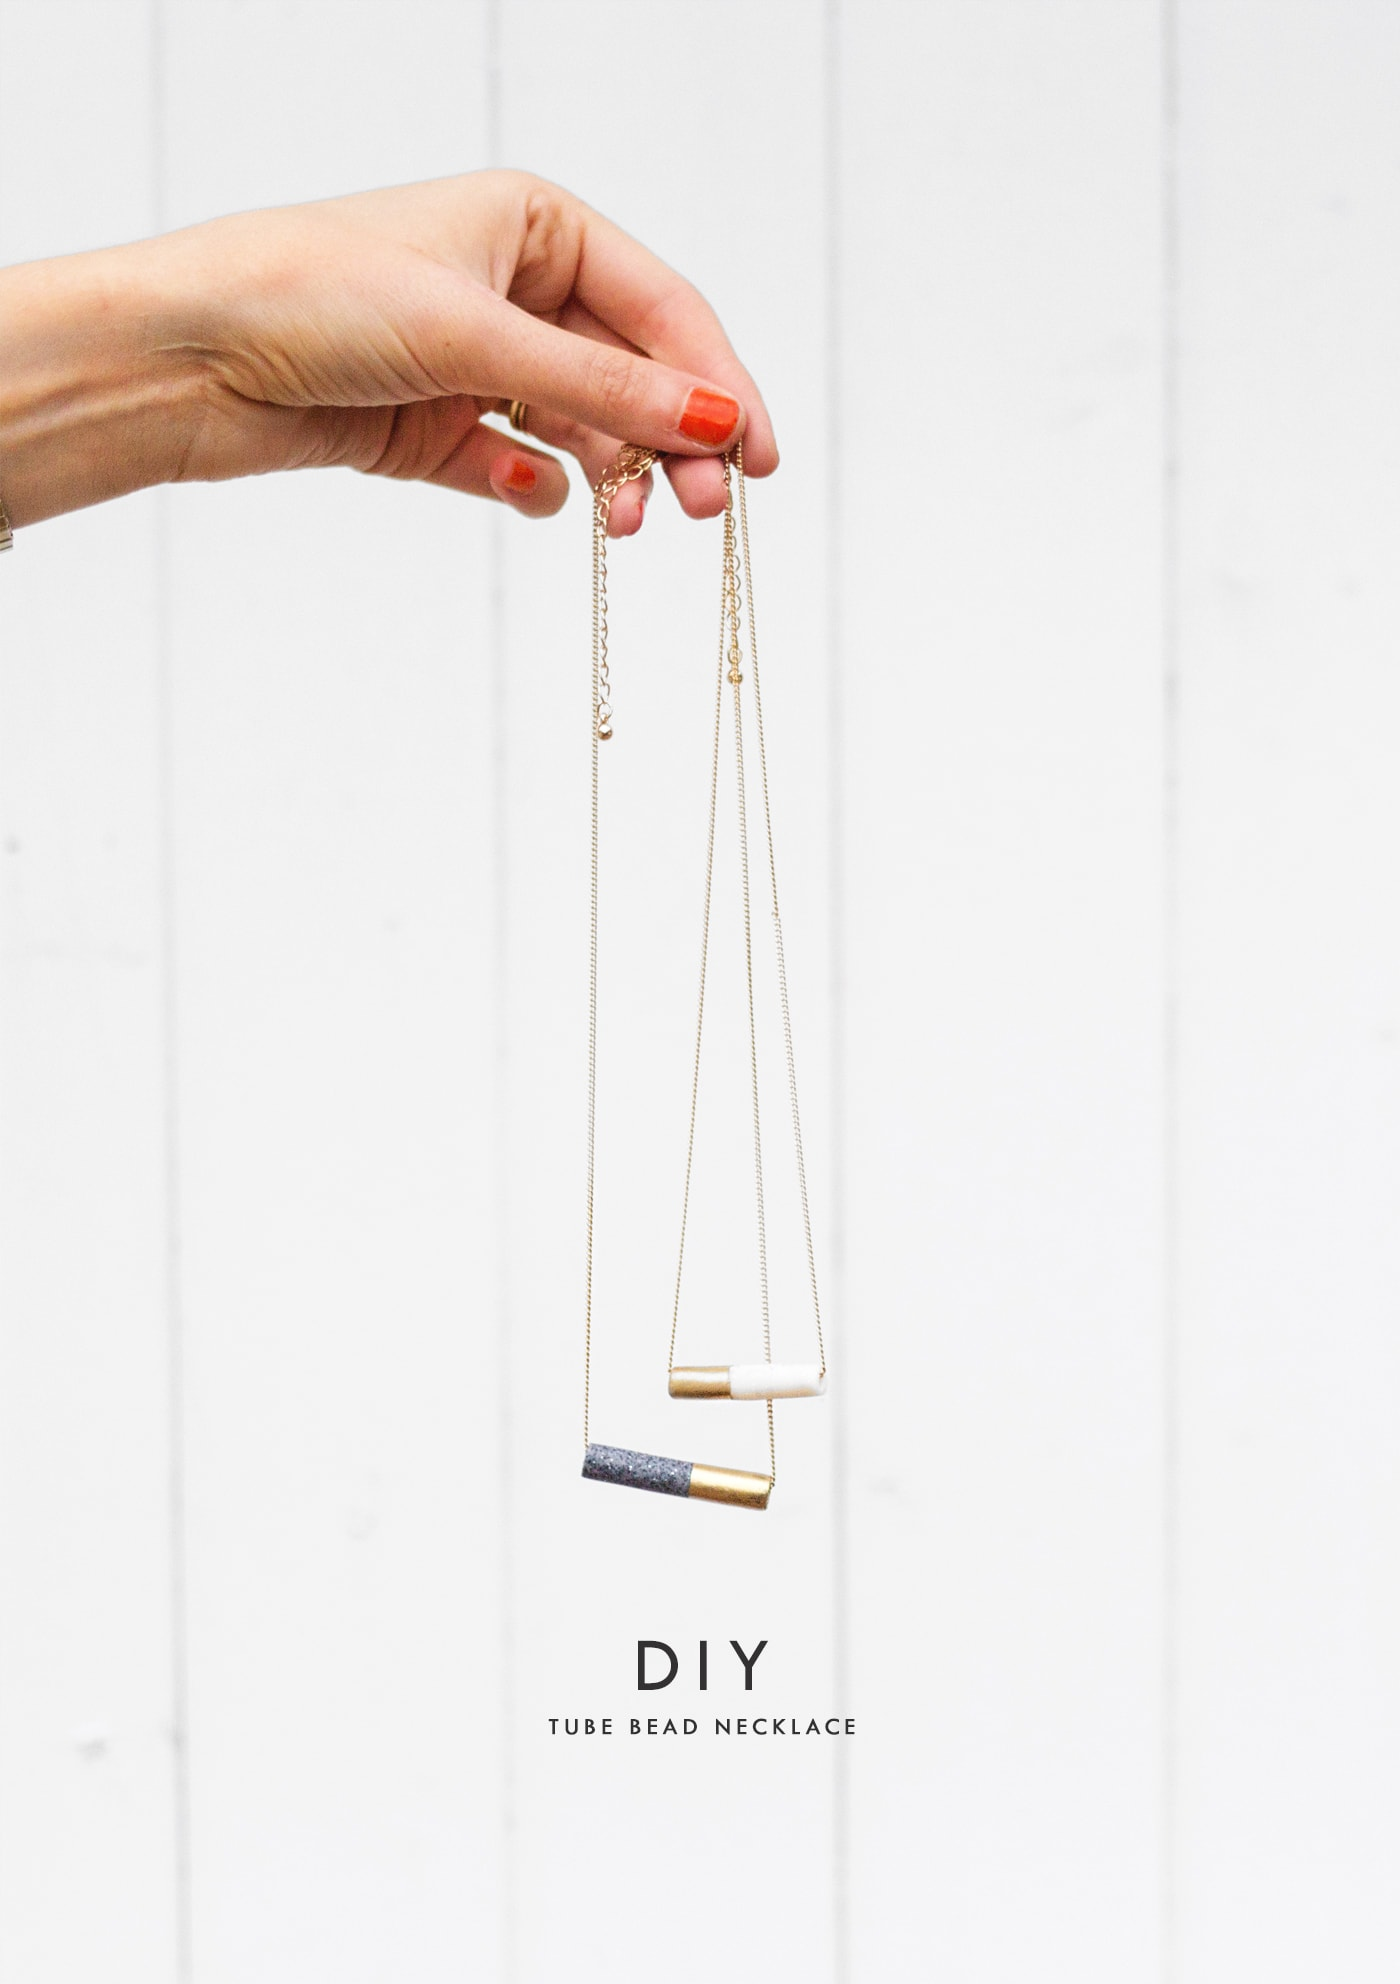 diy tube bead necklace | marble | gold | craft | homemade gifts